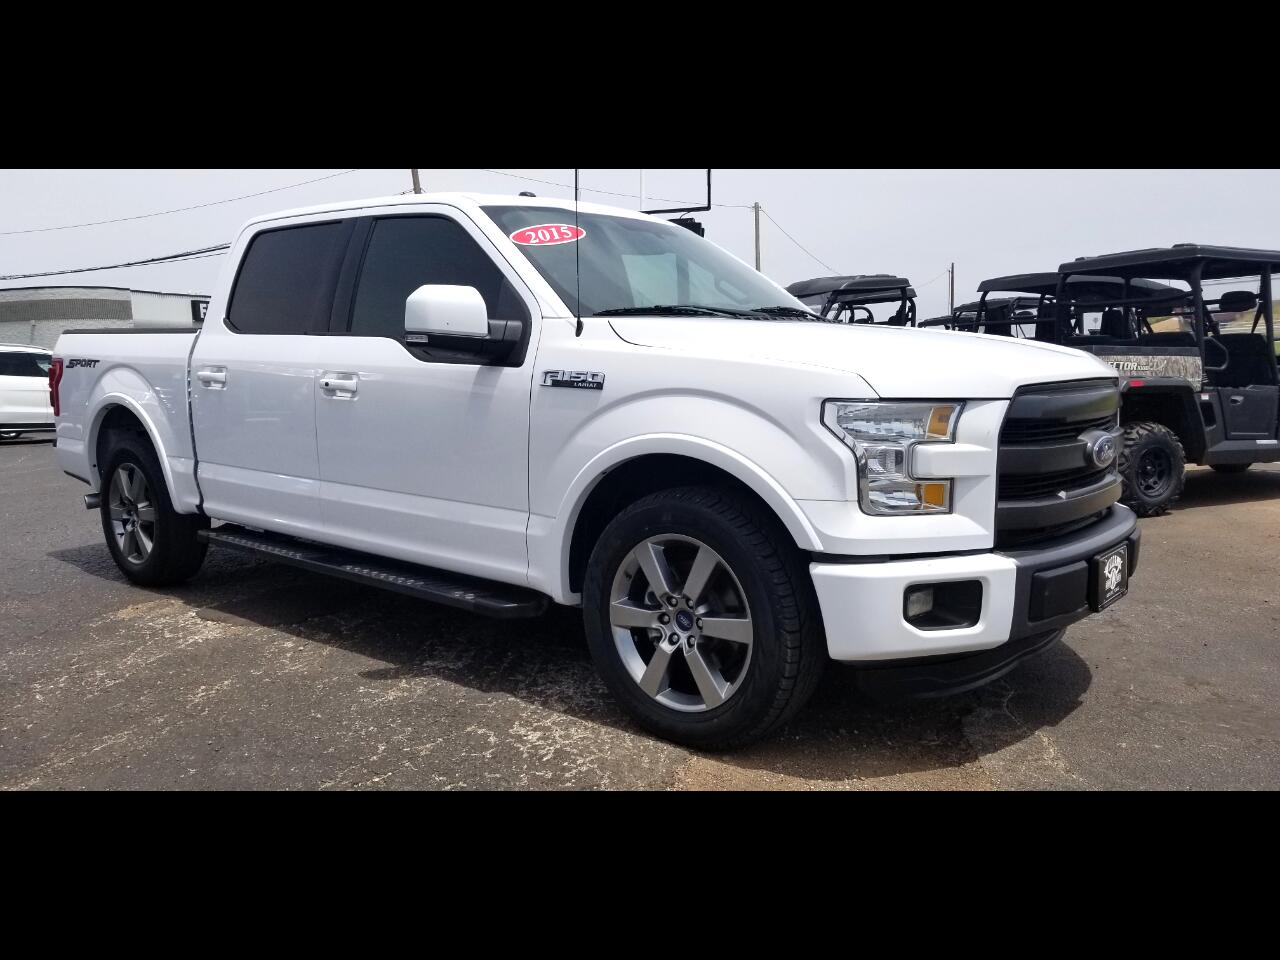 2015 Ford F-150 SuperCrew Lariat Sport